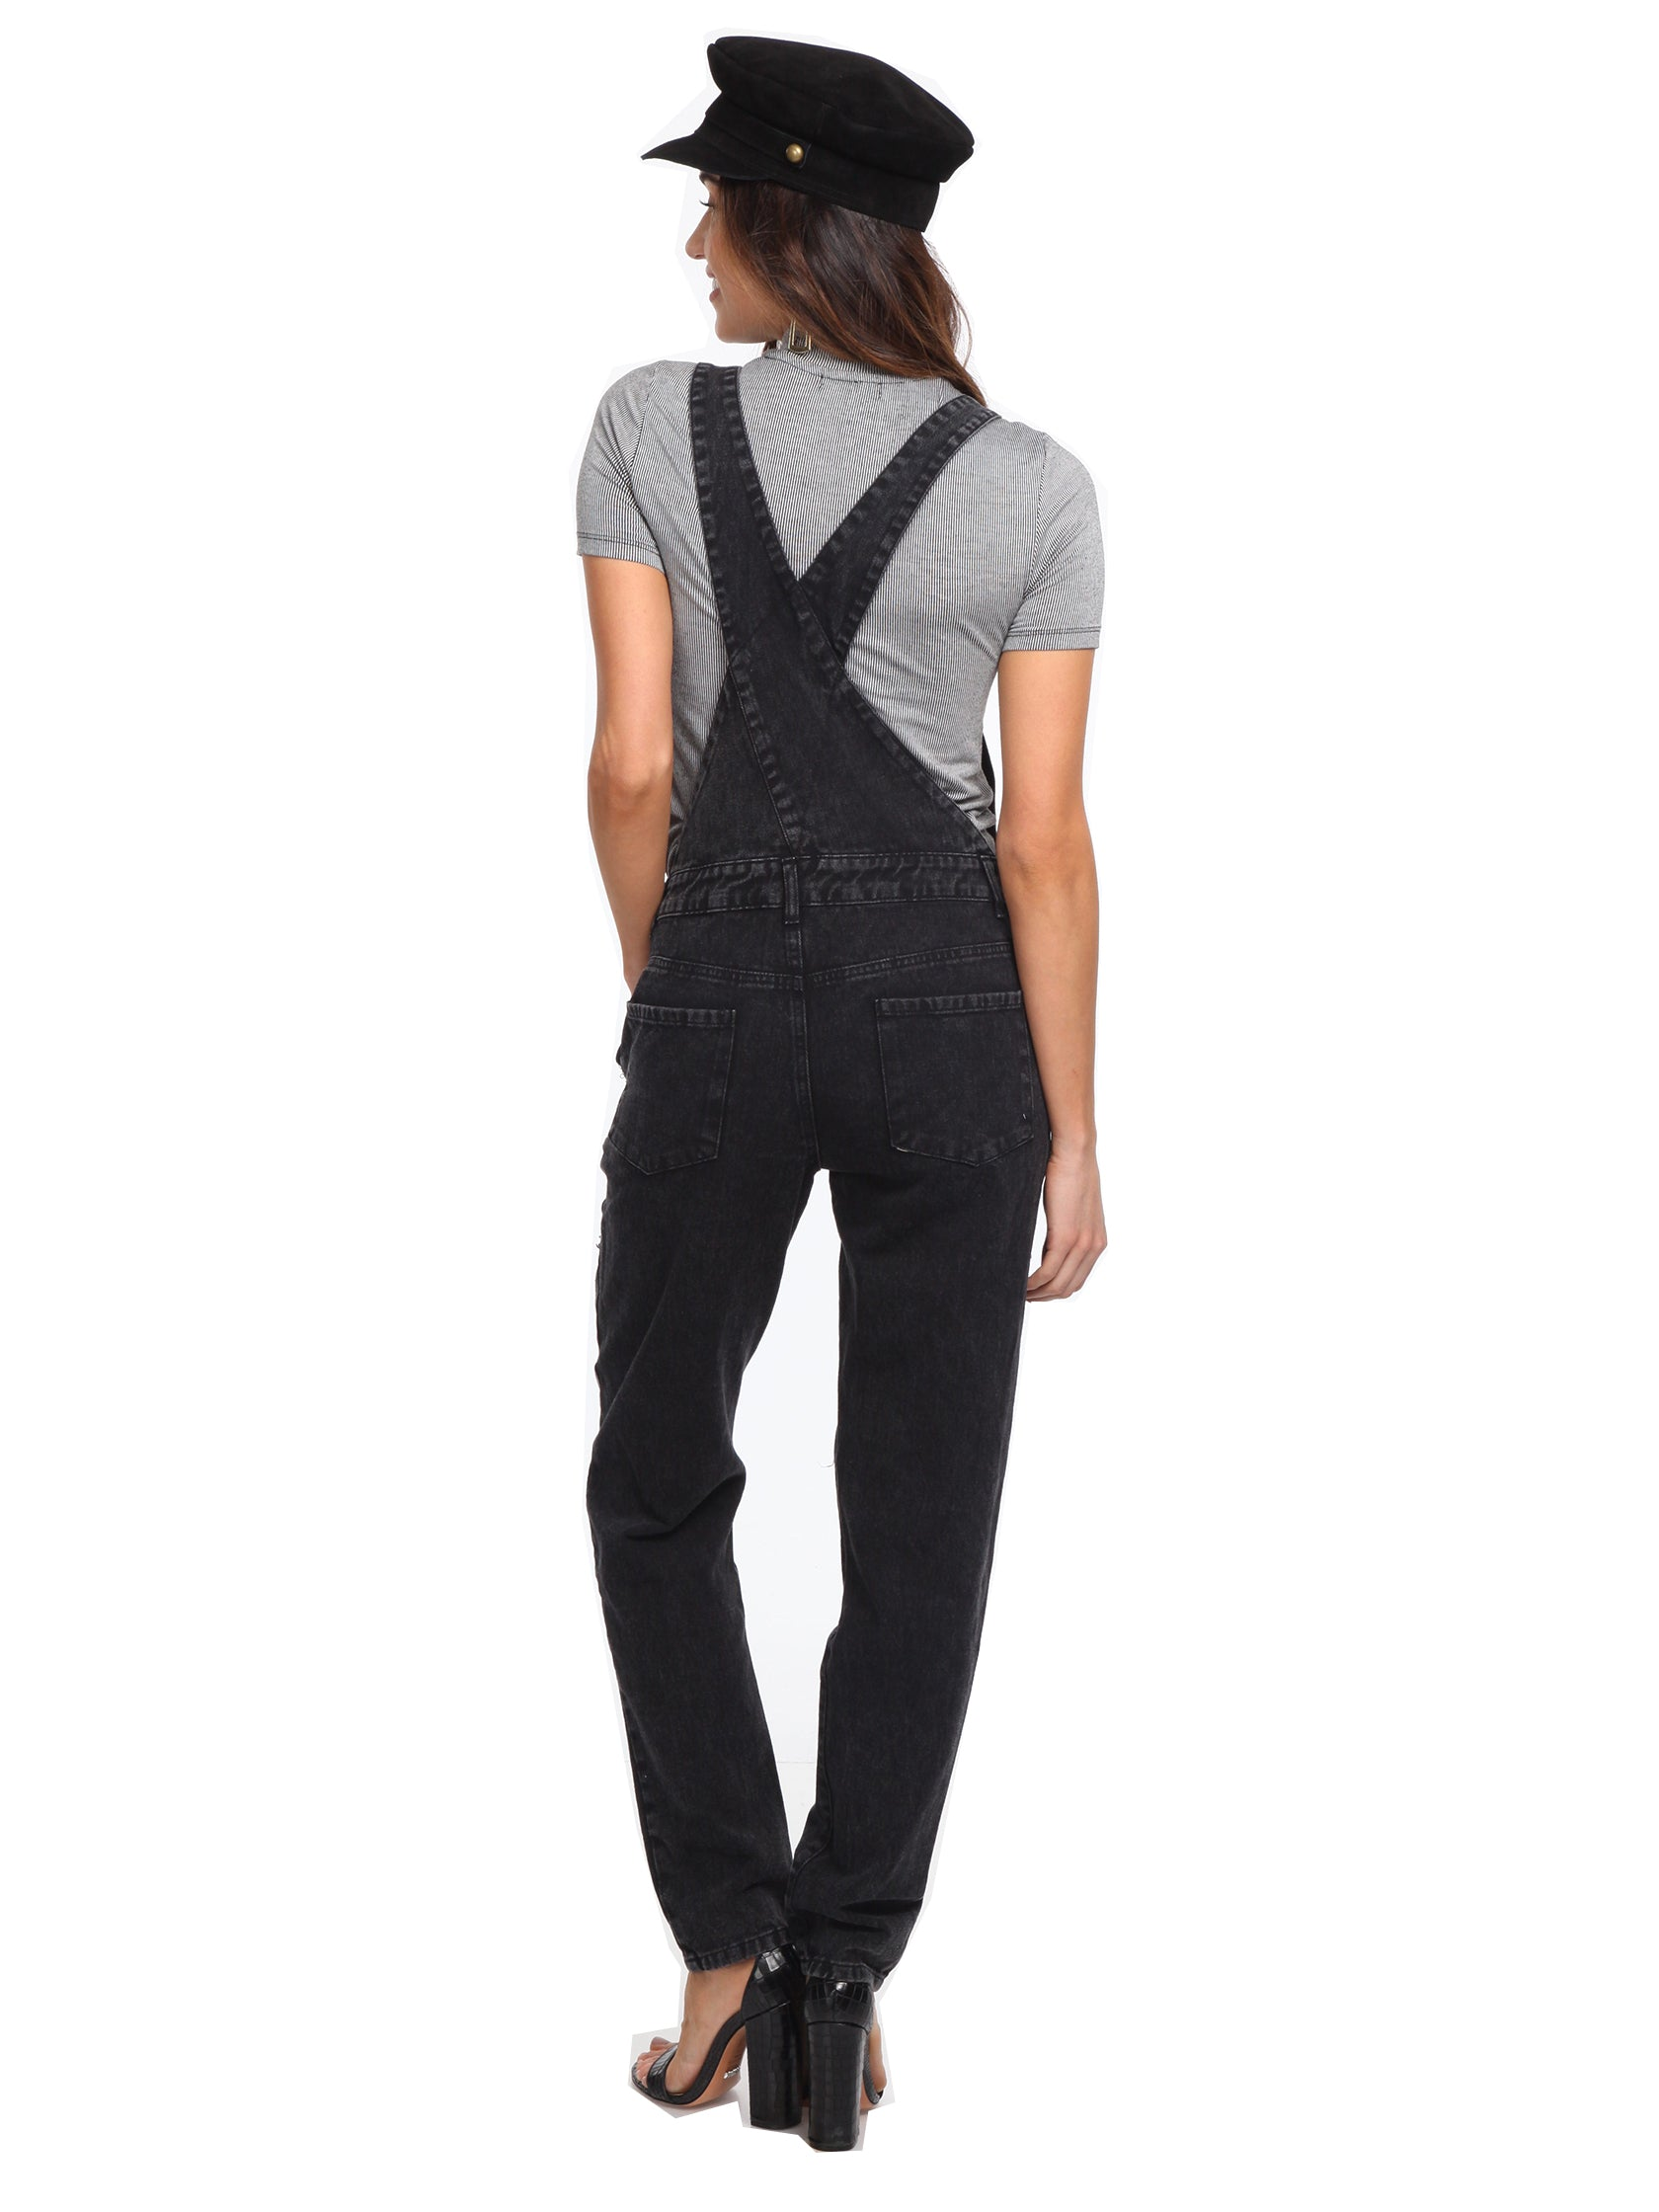 Girl outfit in a jumpsuit rental from FashionPass called Here For A Good Time Overalls